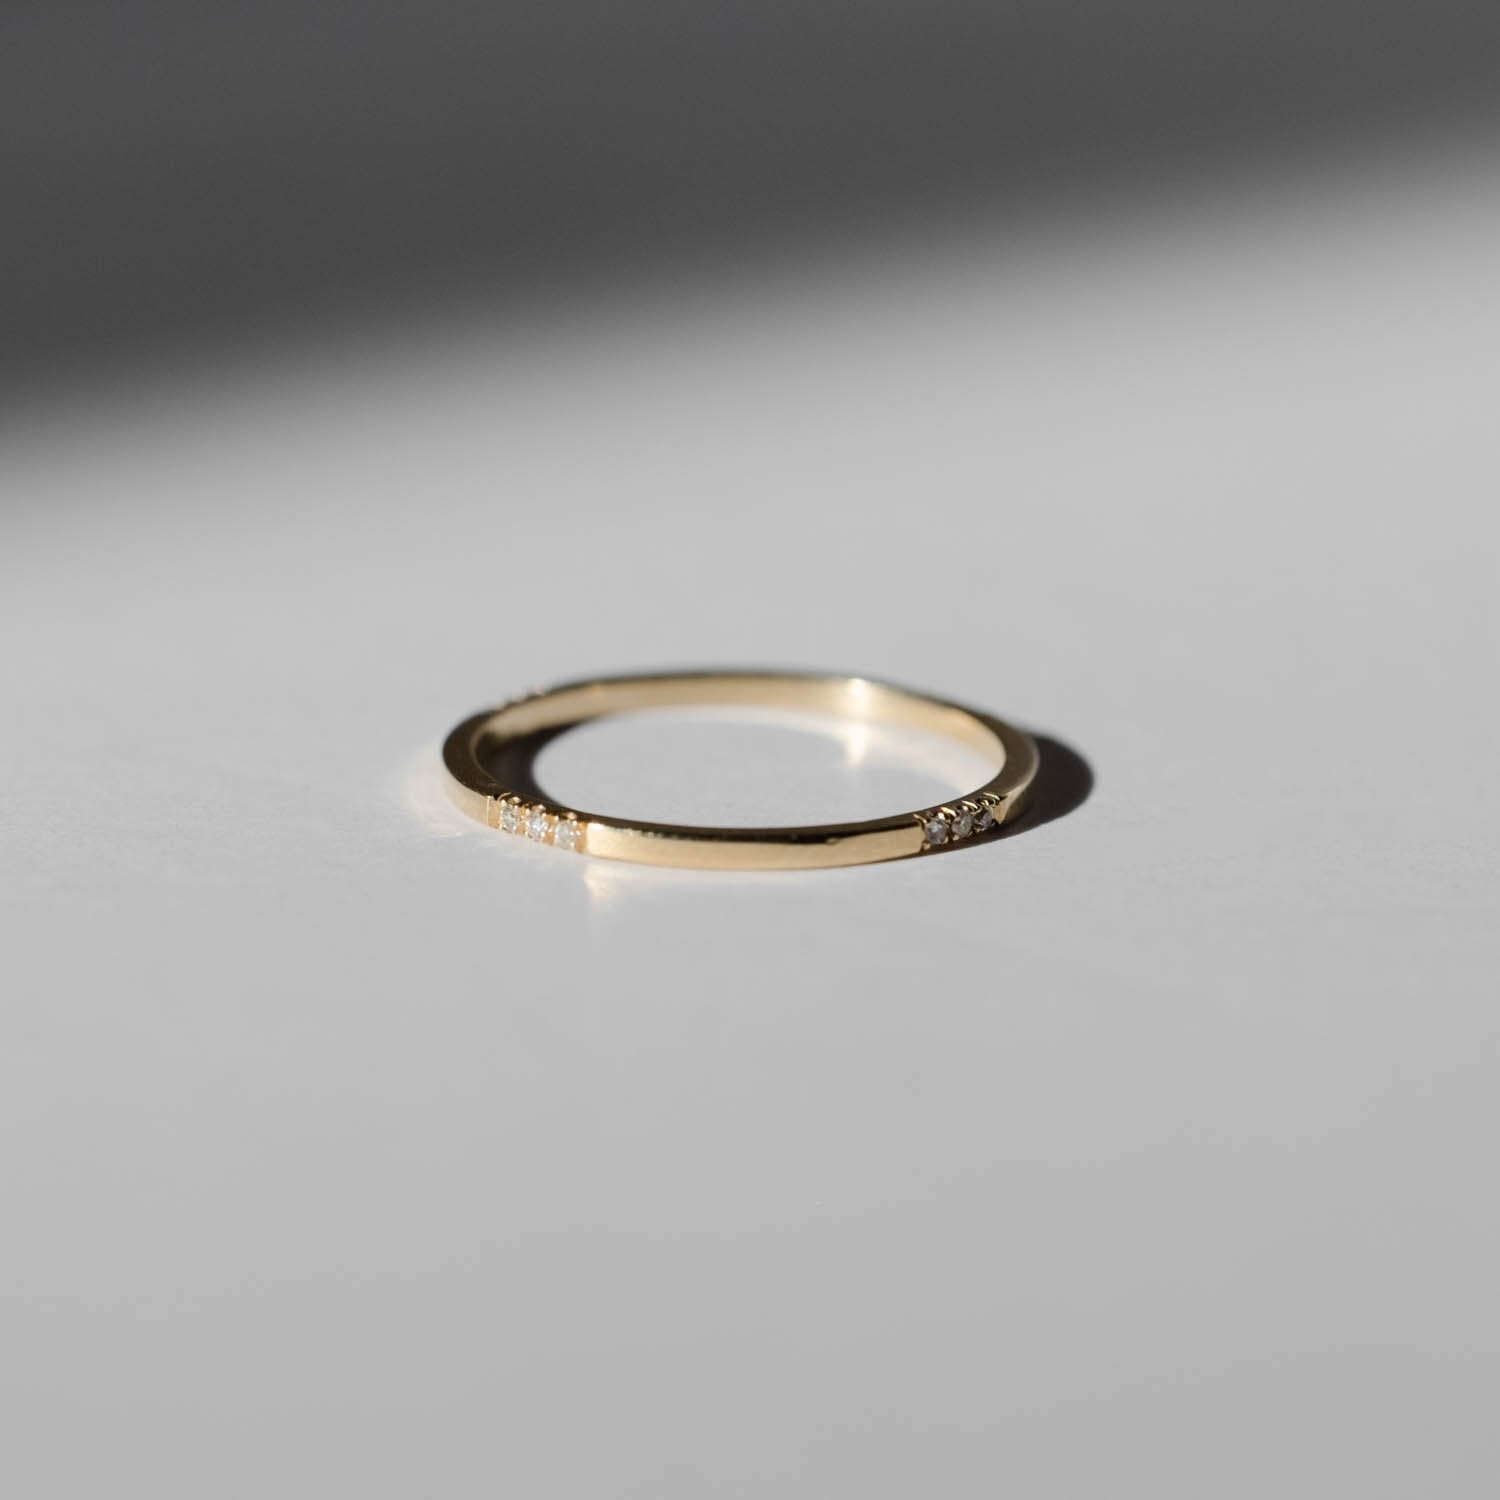 Square Uniform Ring with Diamond Segments - RTS